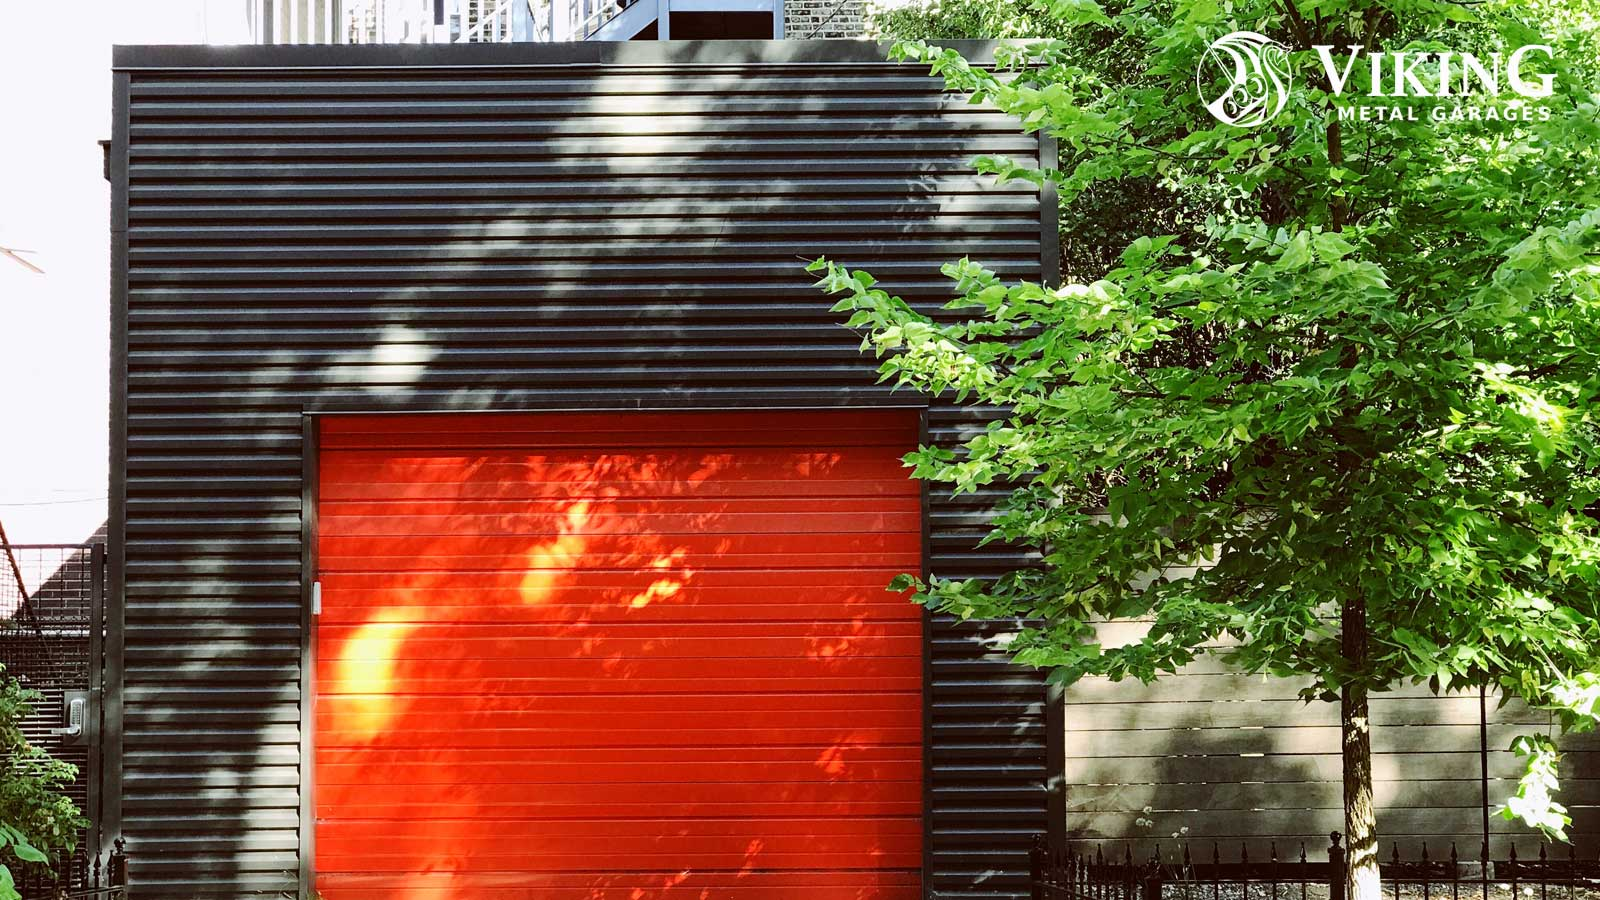 How to Choose the Right Overhead Door for Your Metal Garage?